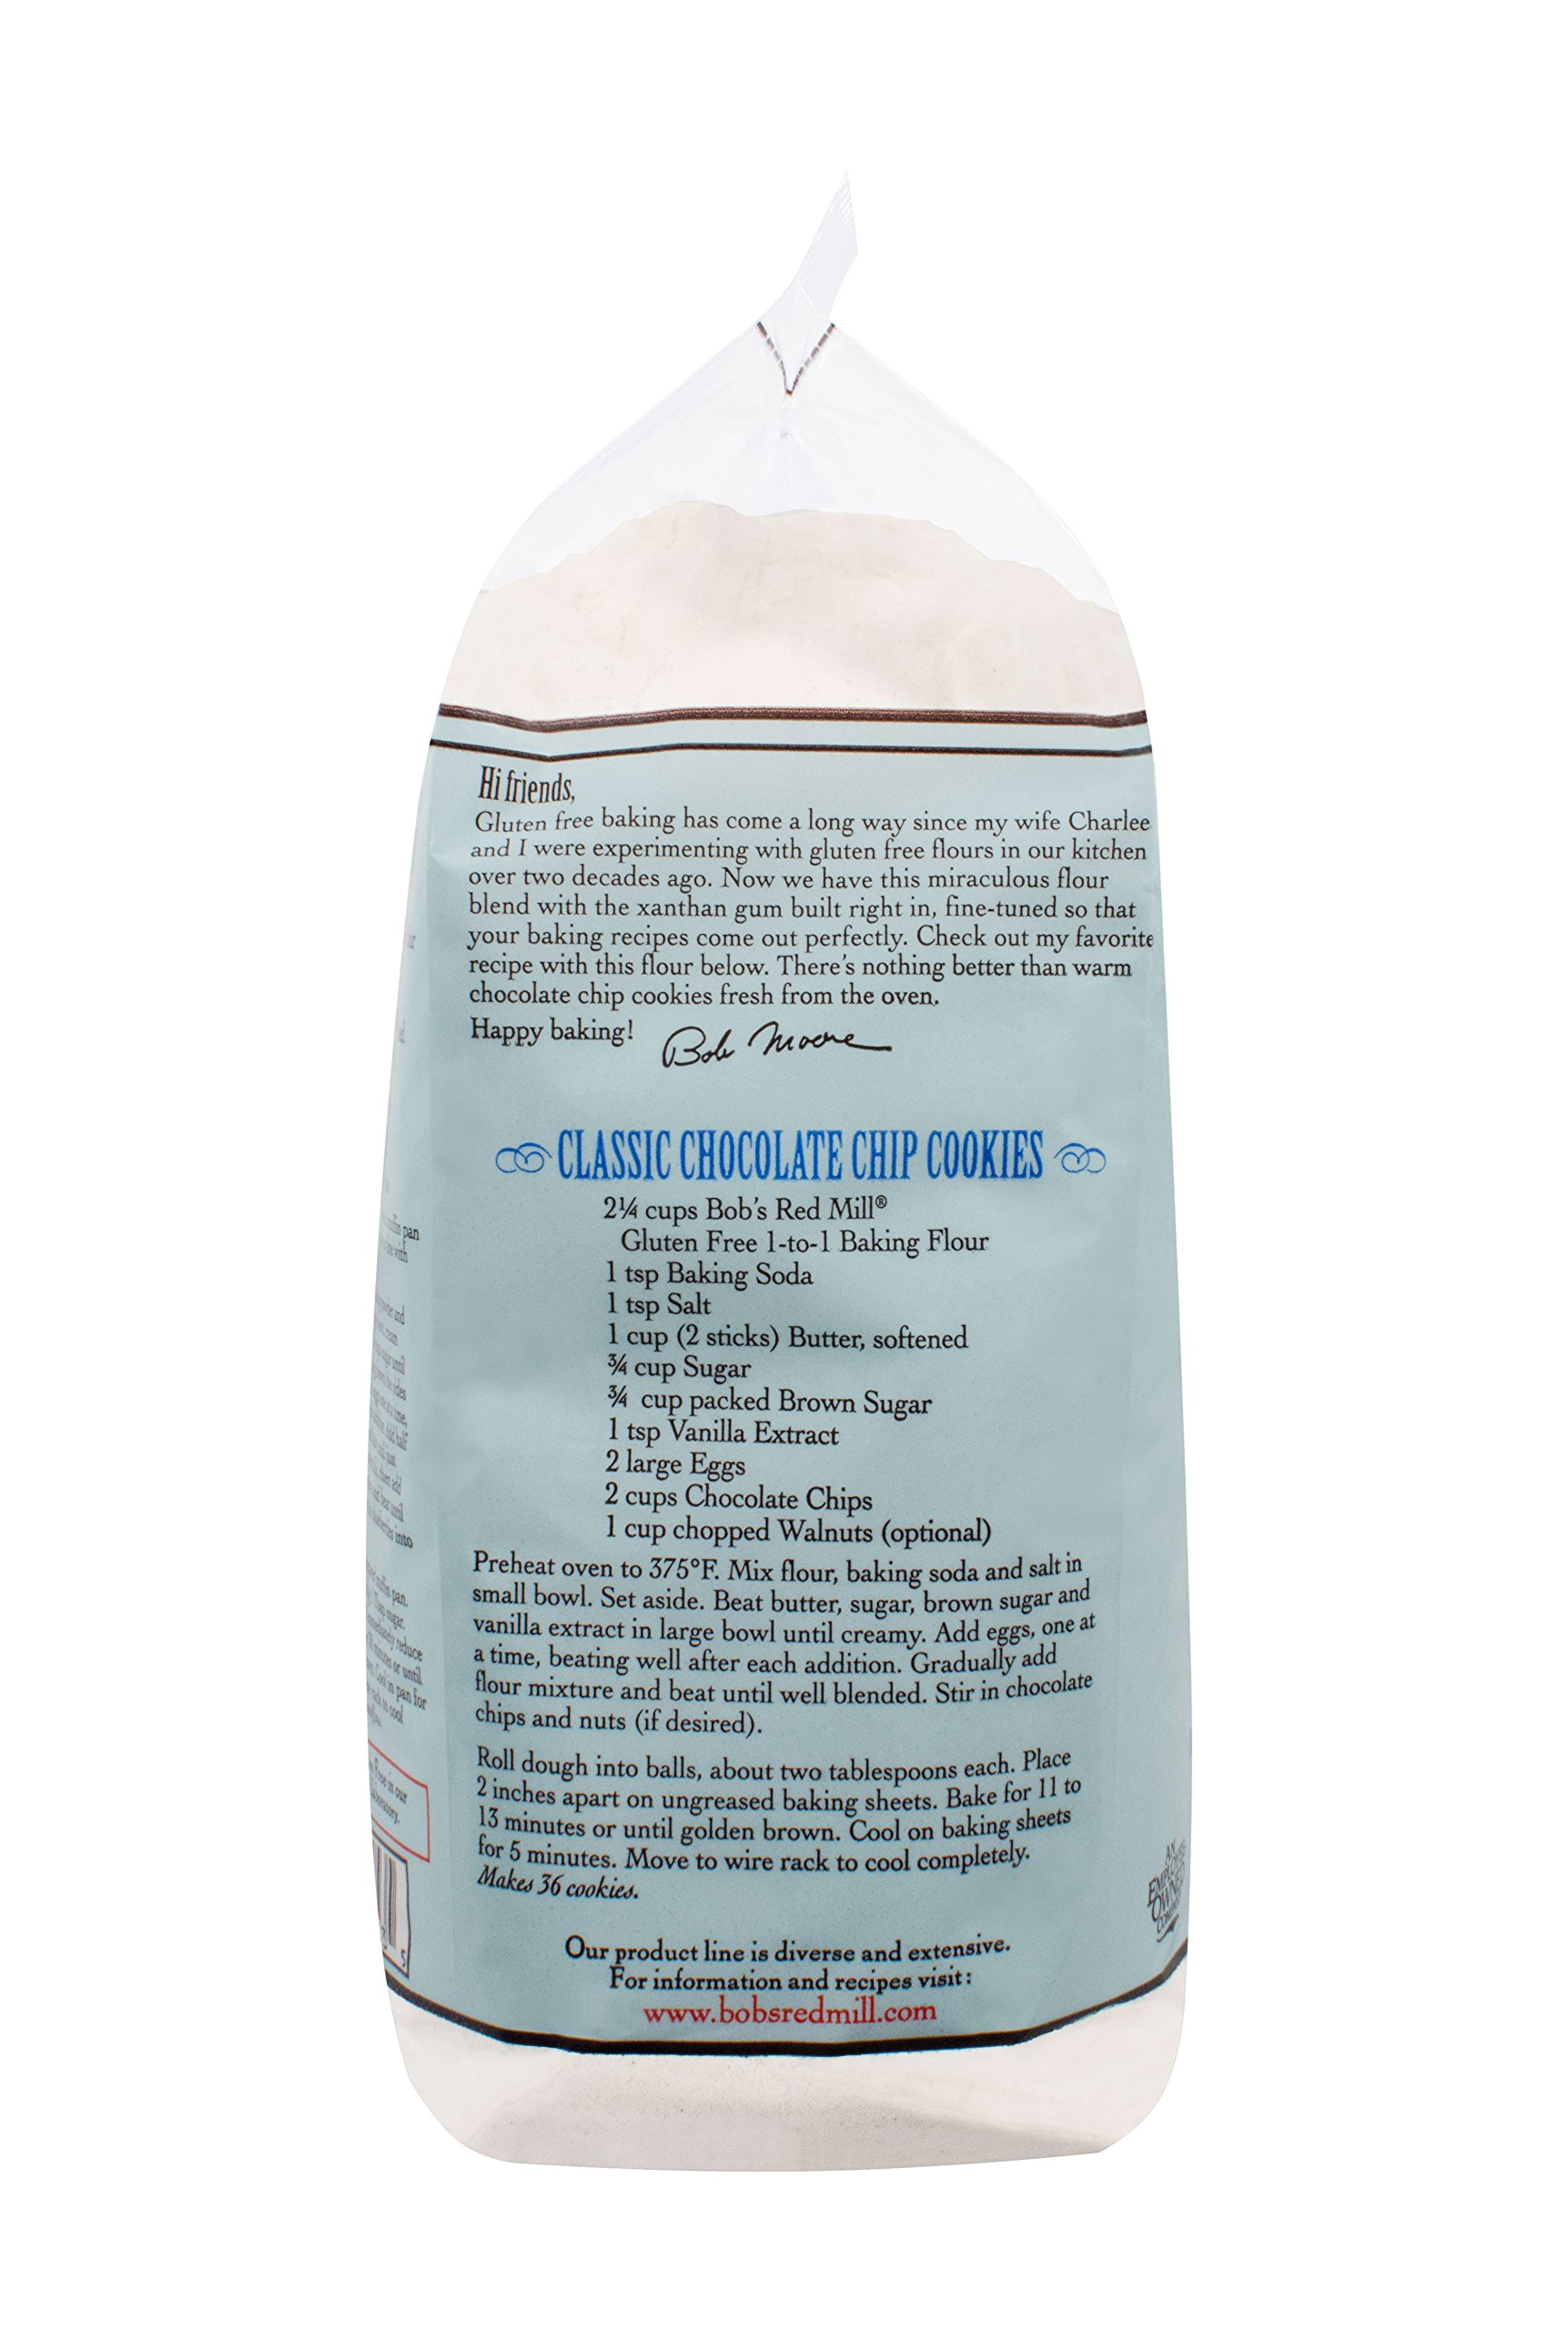 Bob's Red Mill Gluten Free 1 to 1 Baking Flour, 44 Ounce (Pack of 4) by Bob's Red Mill (Image #5)